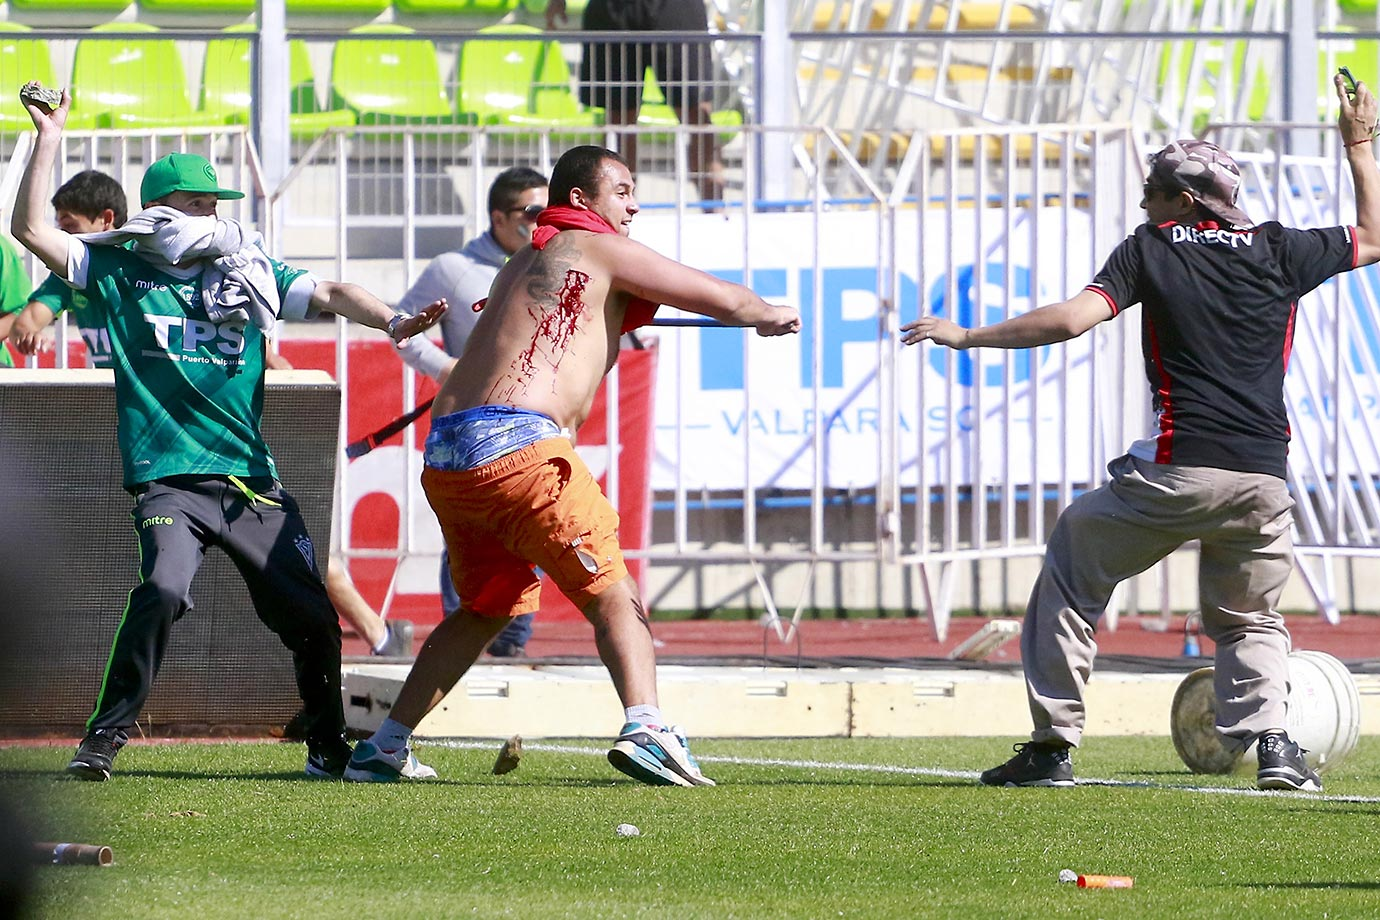 Soccer fans of Santiago Wanderers, left, fight with a fan of the Colo-Colo soccer team before the start of their teams' local match in Valparaiso, Santiago, Chile. The match was suspended after fans clashed violently on the field.